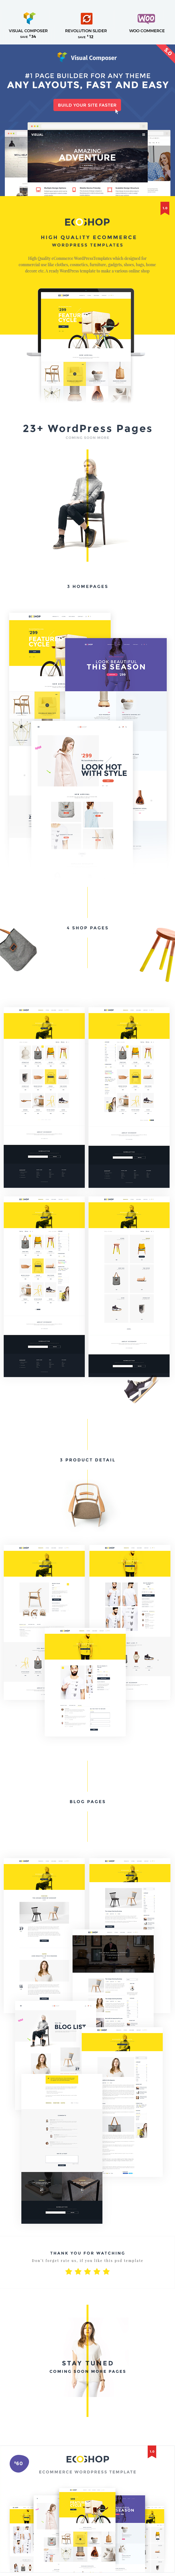 ECOSHOP - Multipurpose eCommerce WordPress Theme